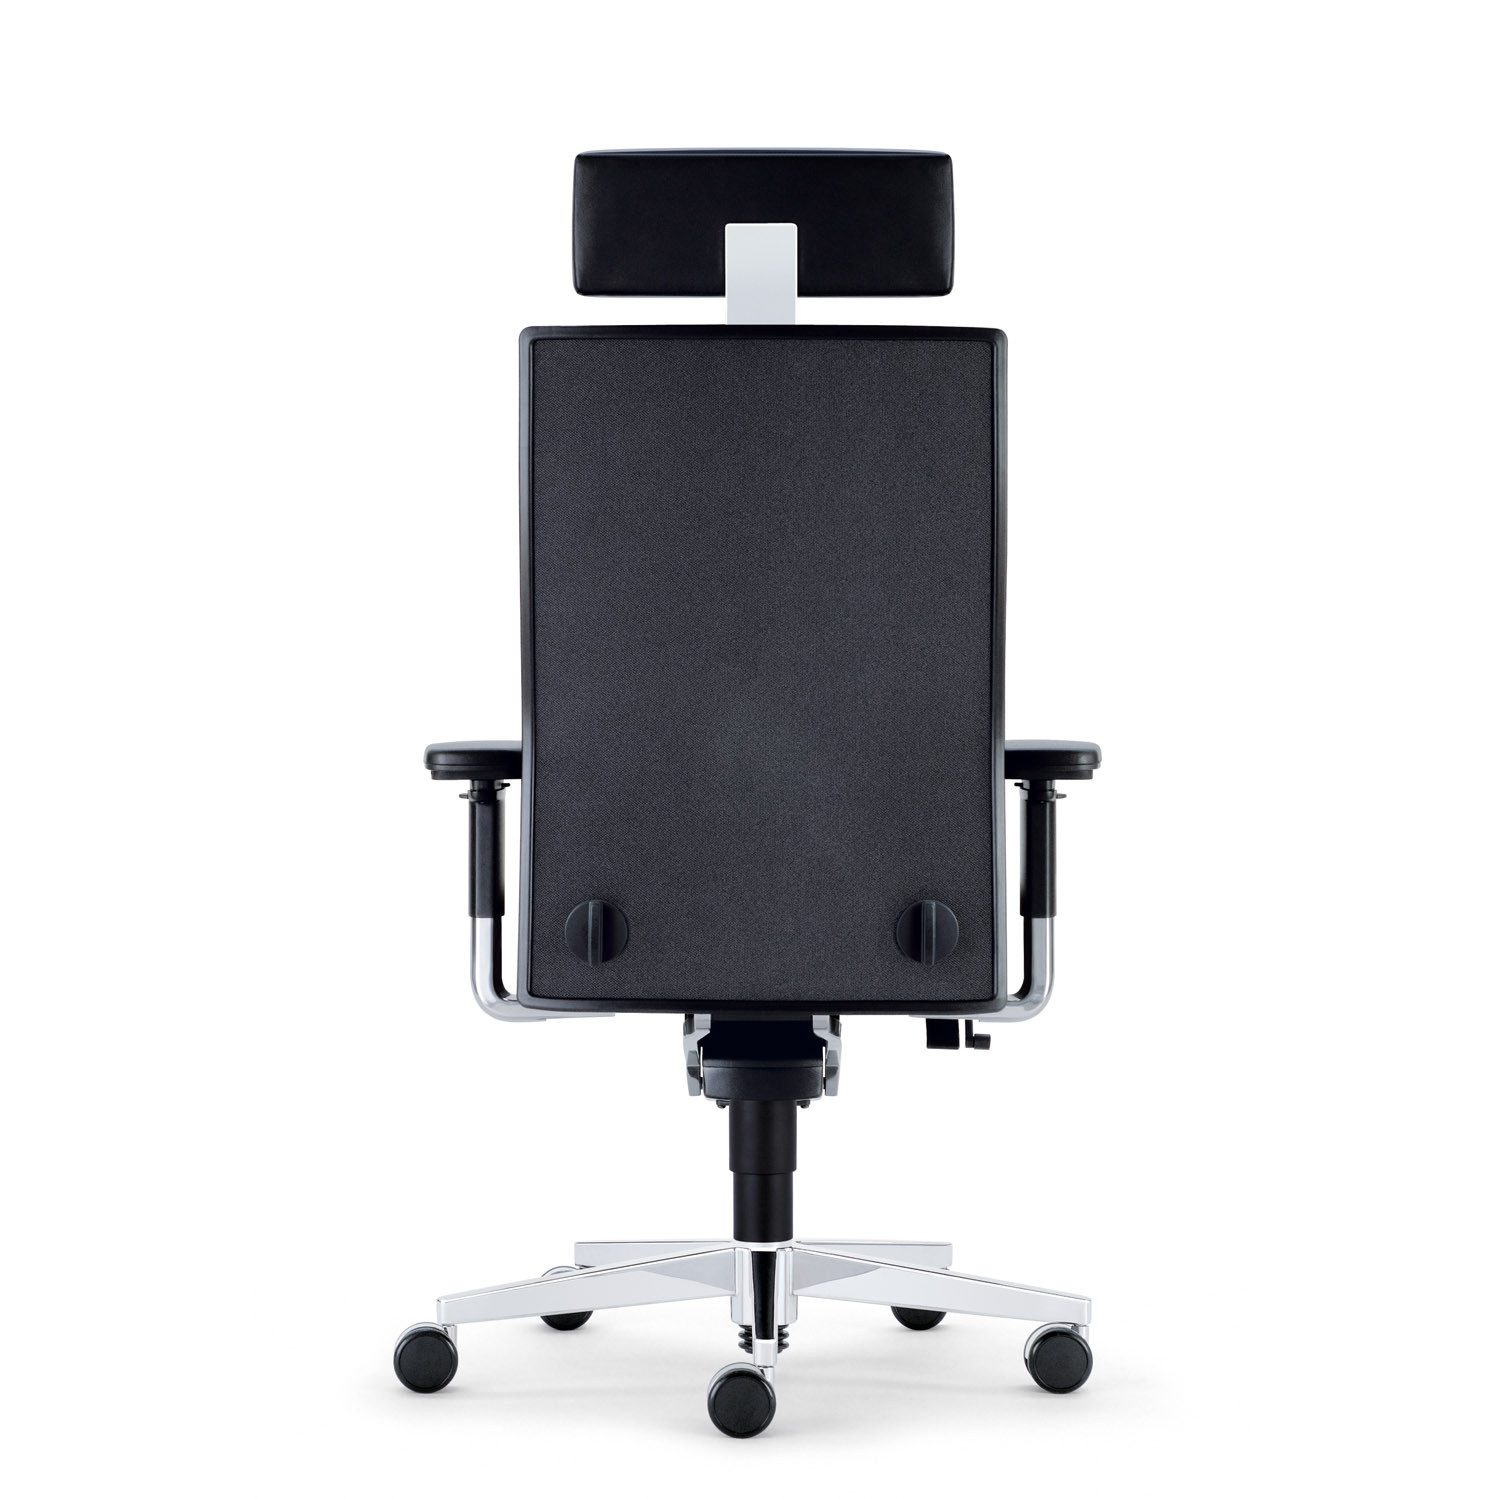 Mr. 24 Executive Chair with Adjustable Neckrest